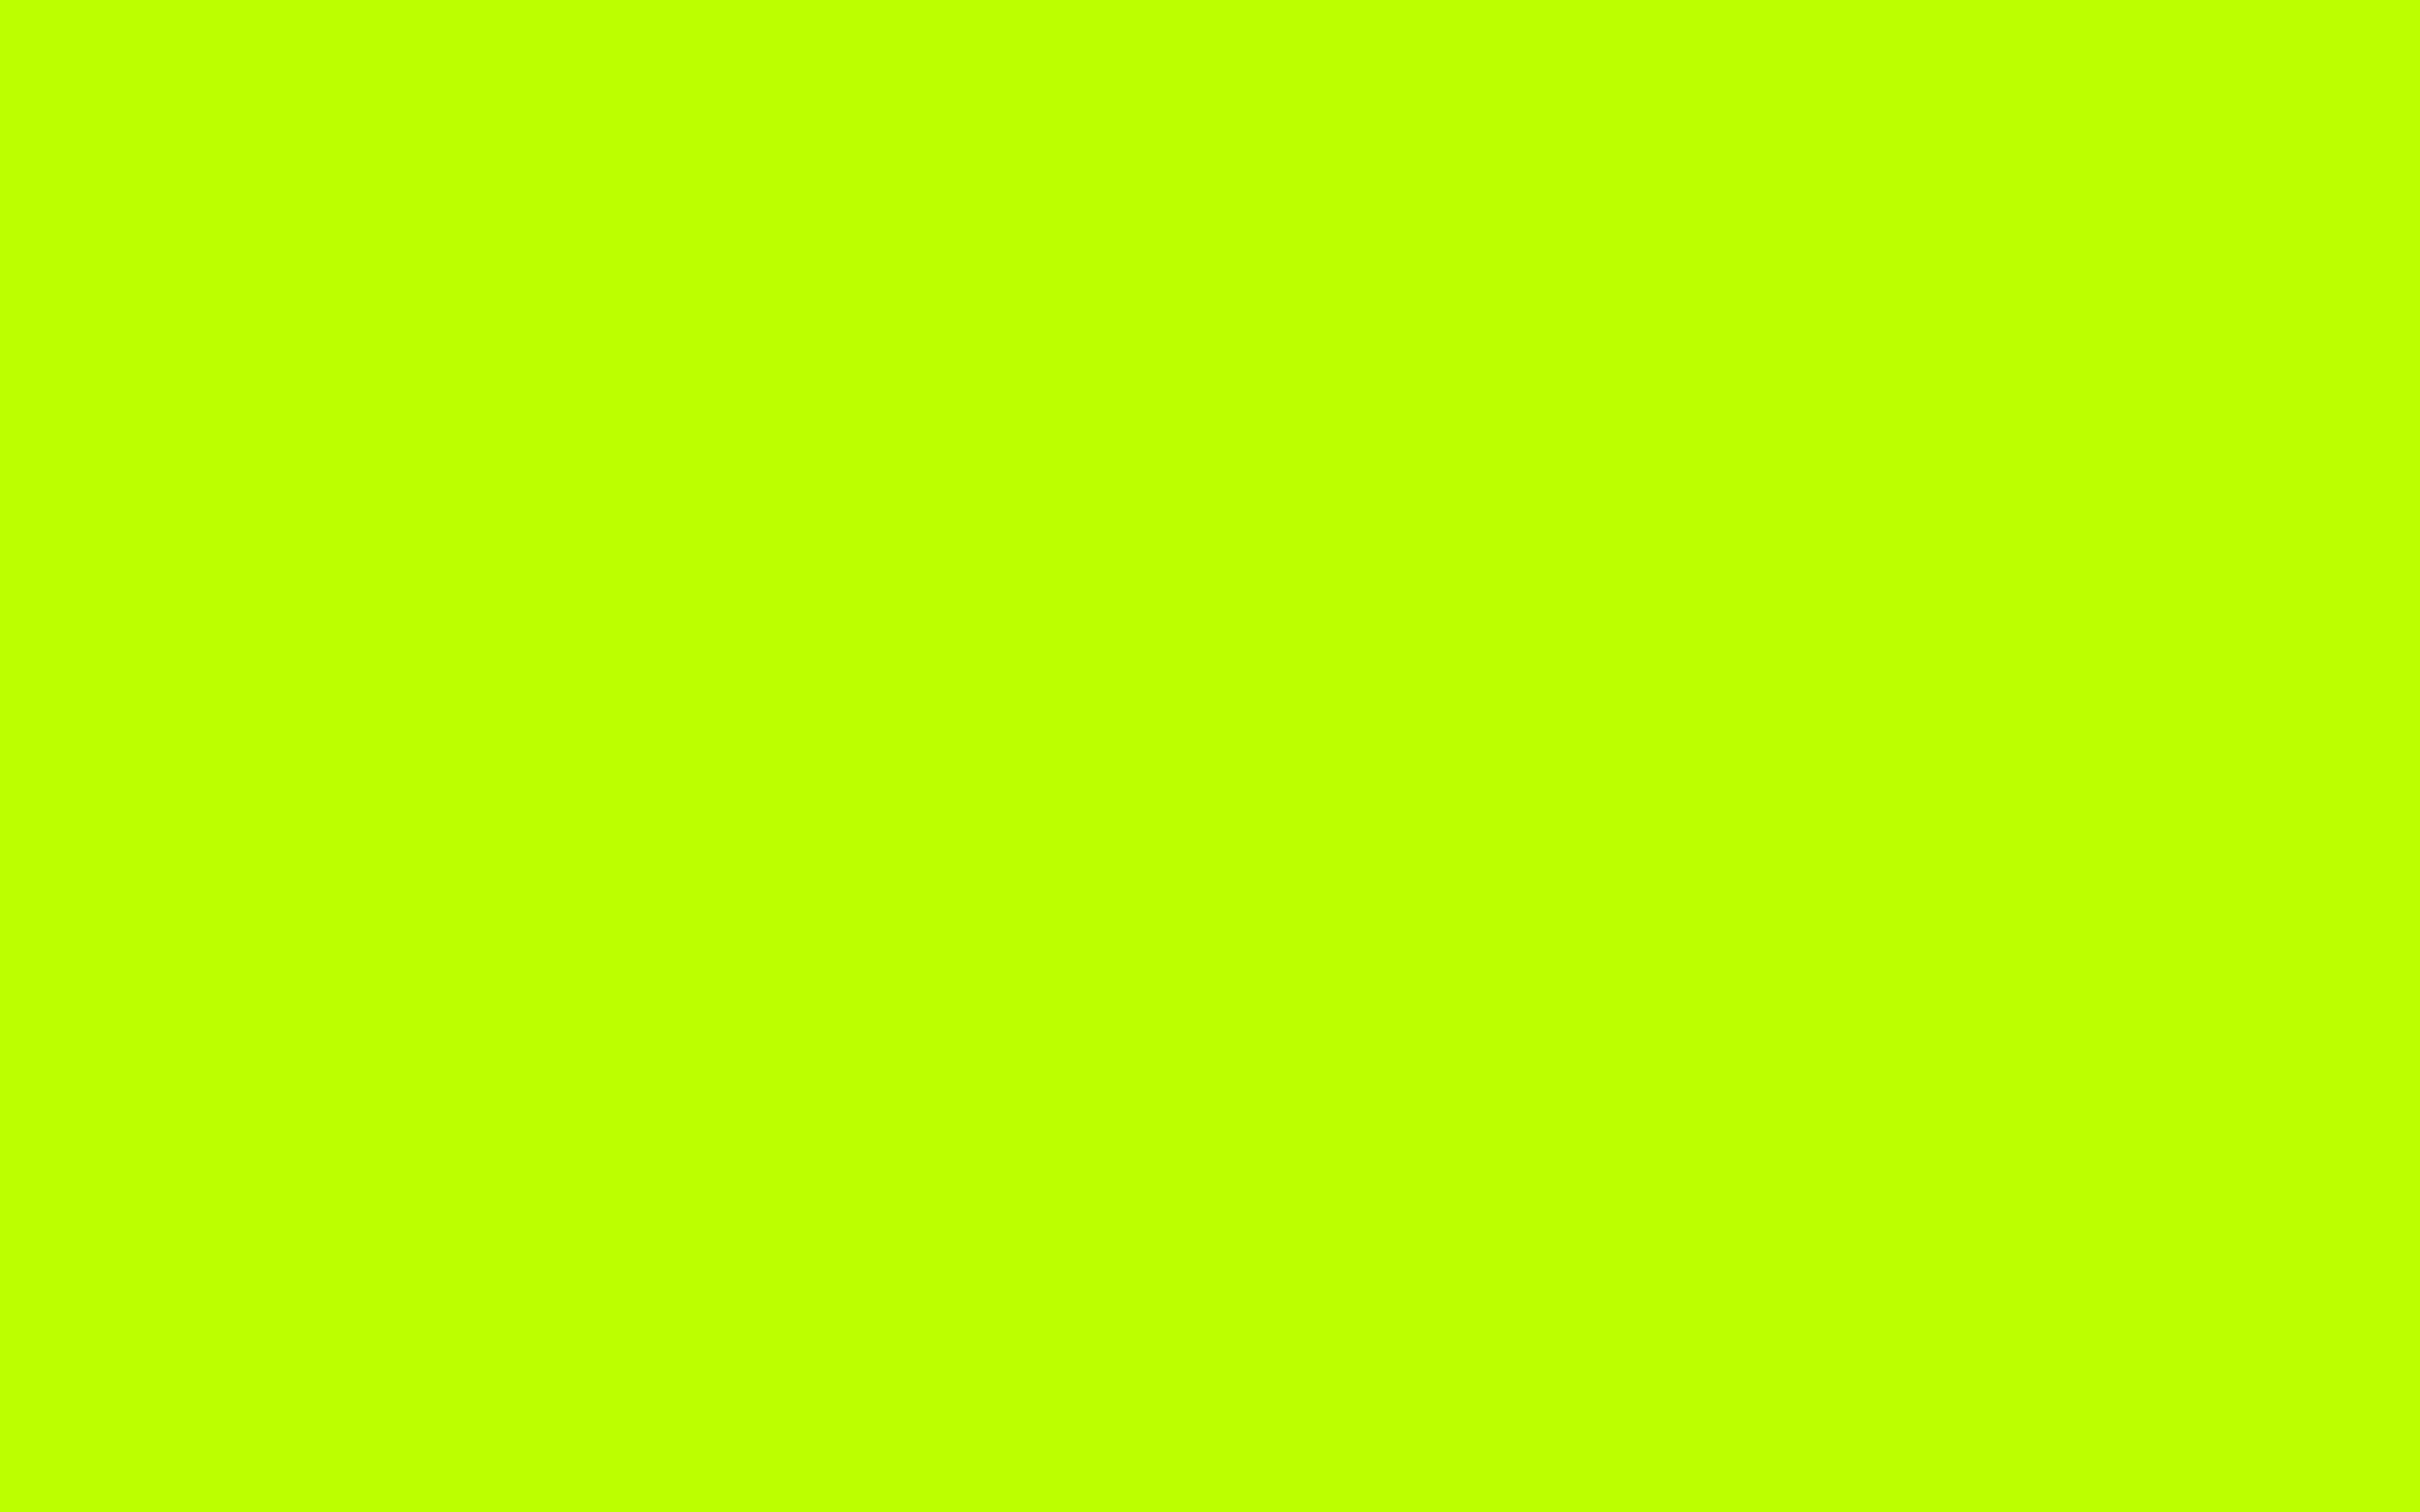 lime color background - photo #3